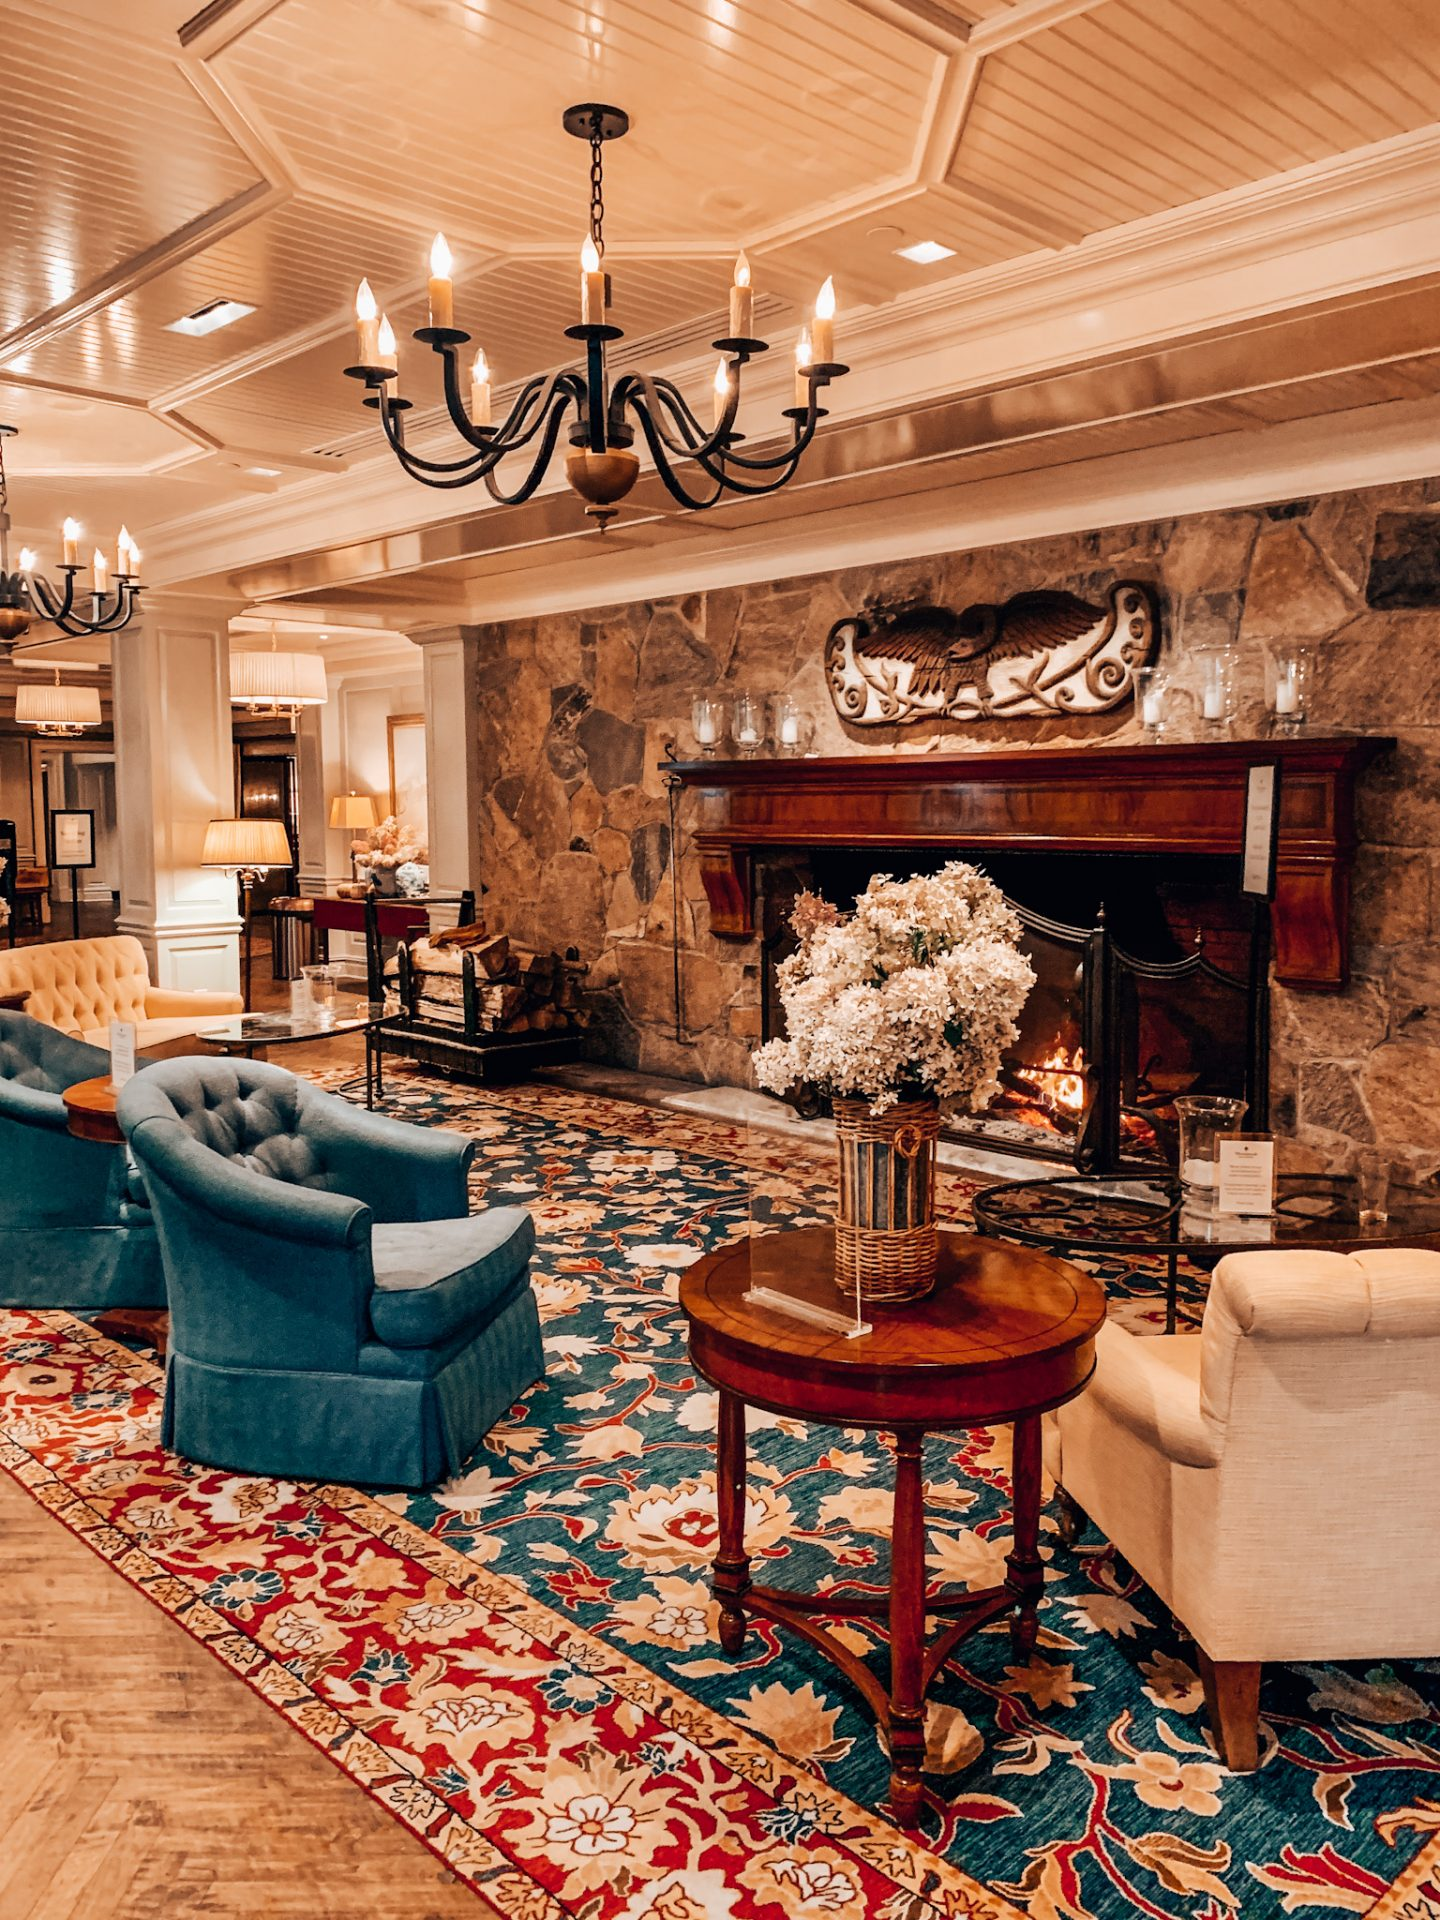 The lobby of the Woodstock Inn during the holidays in New England